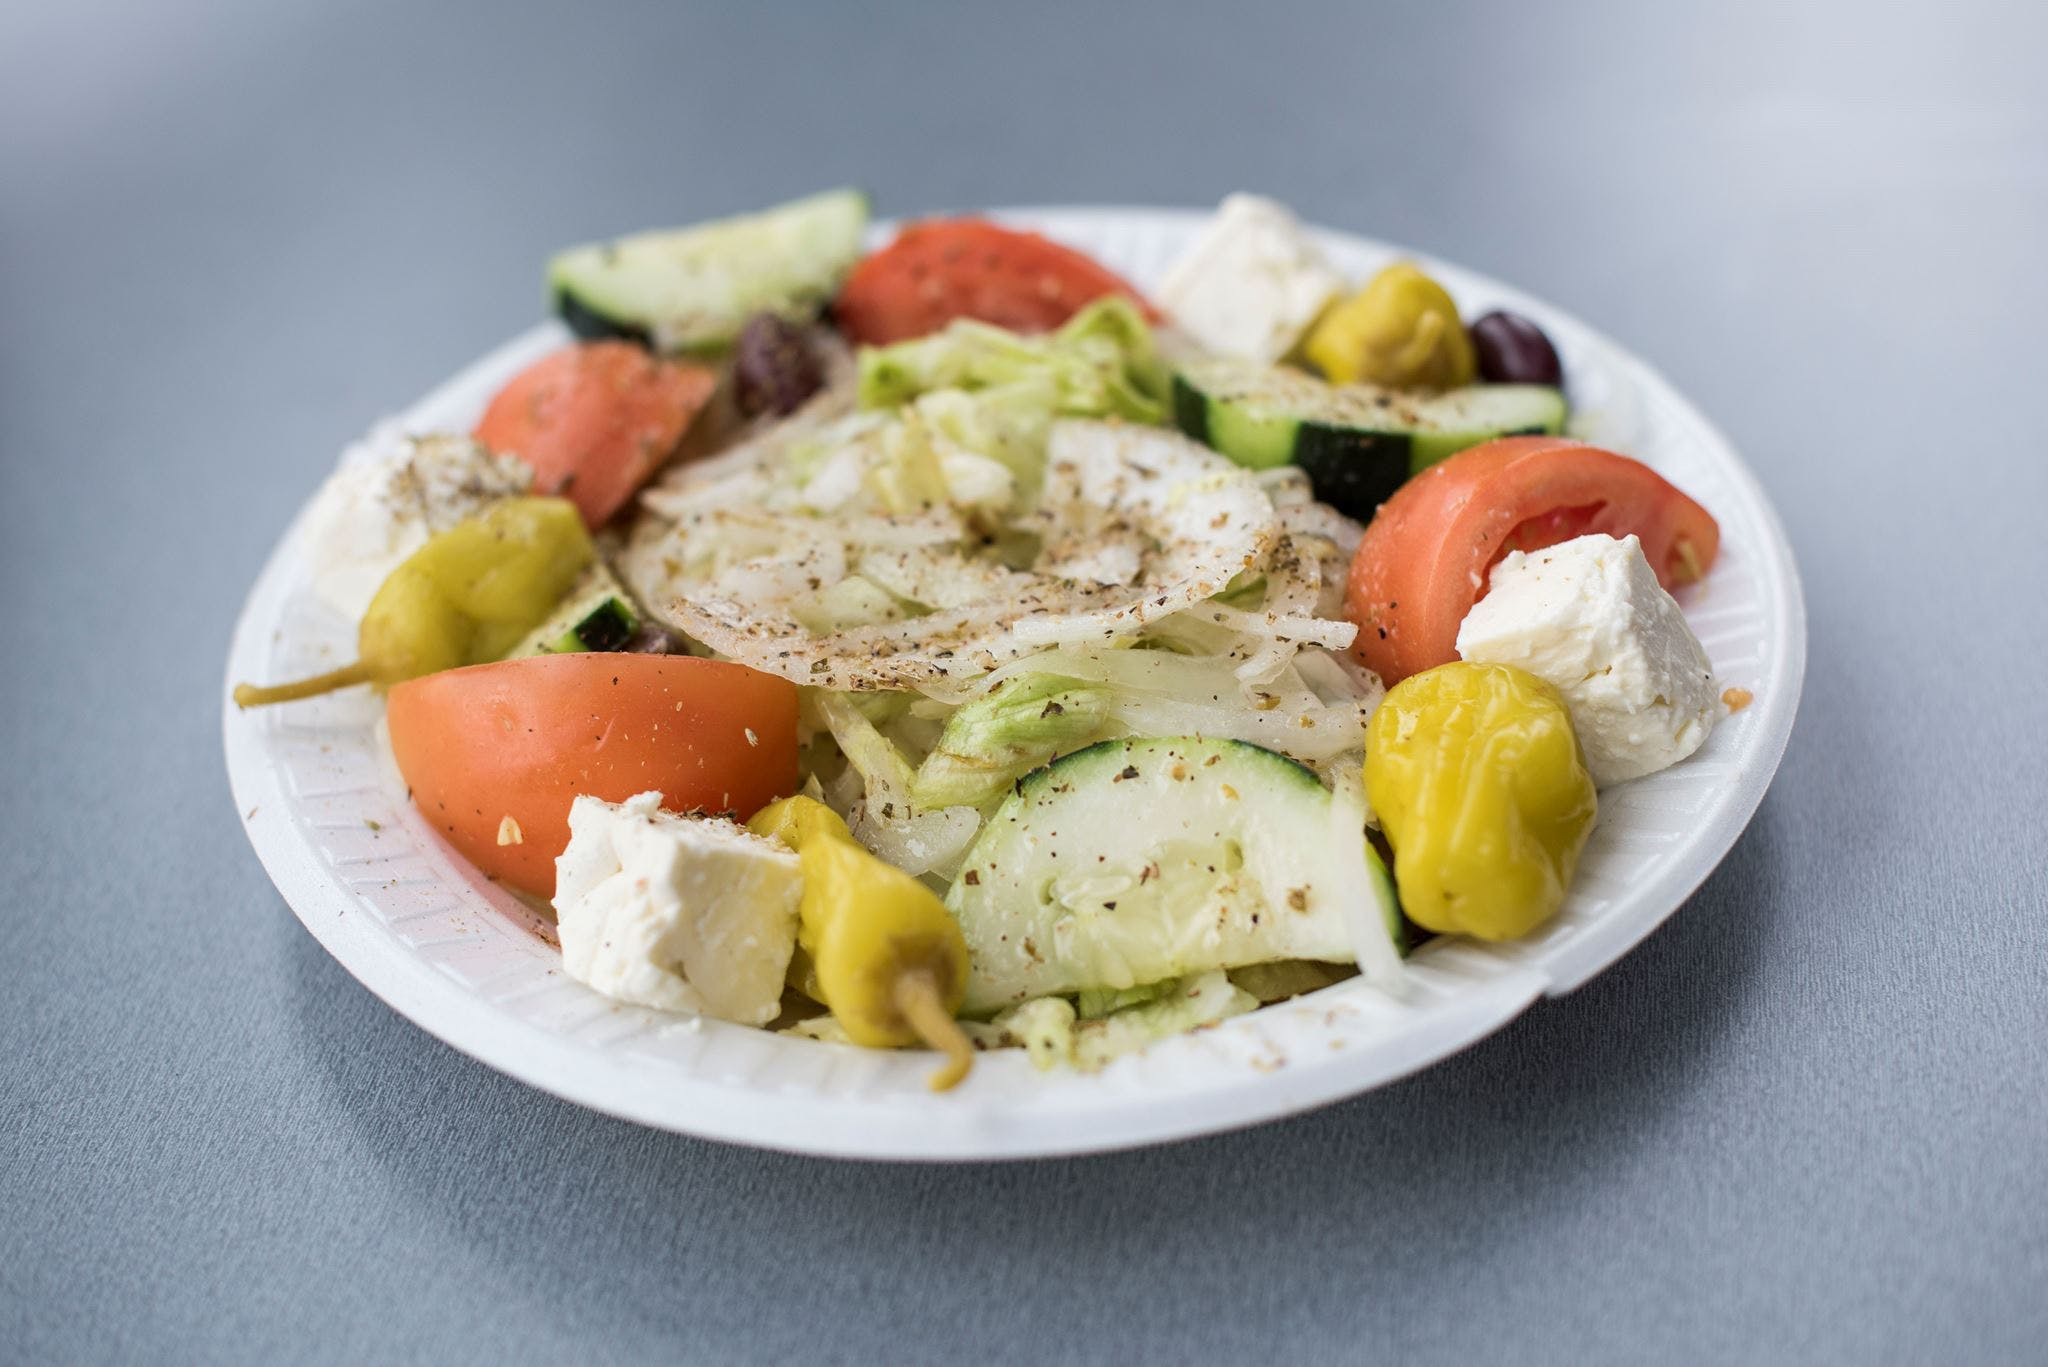 Greek Salad from Gyro Palace - Glendale in Glendale, WI